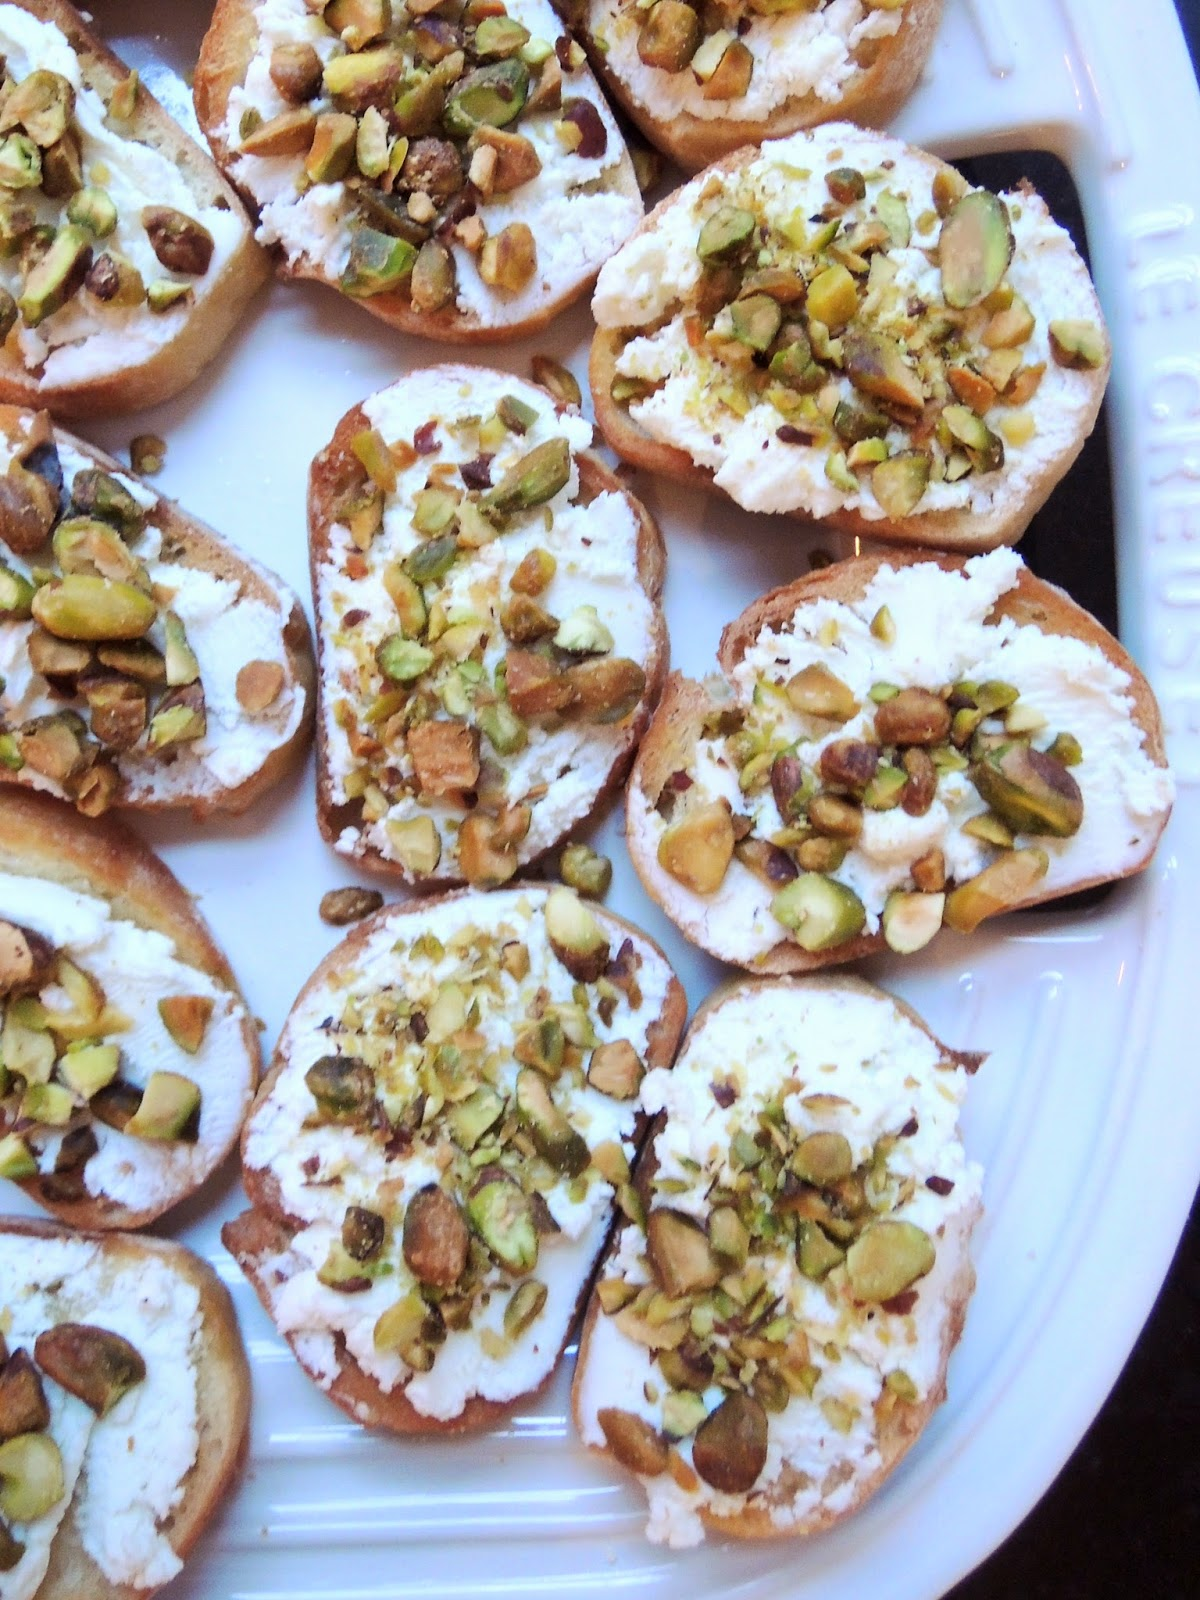 Goat cheese and pistachio crostini